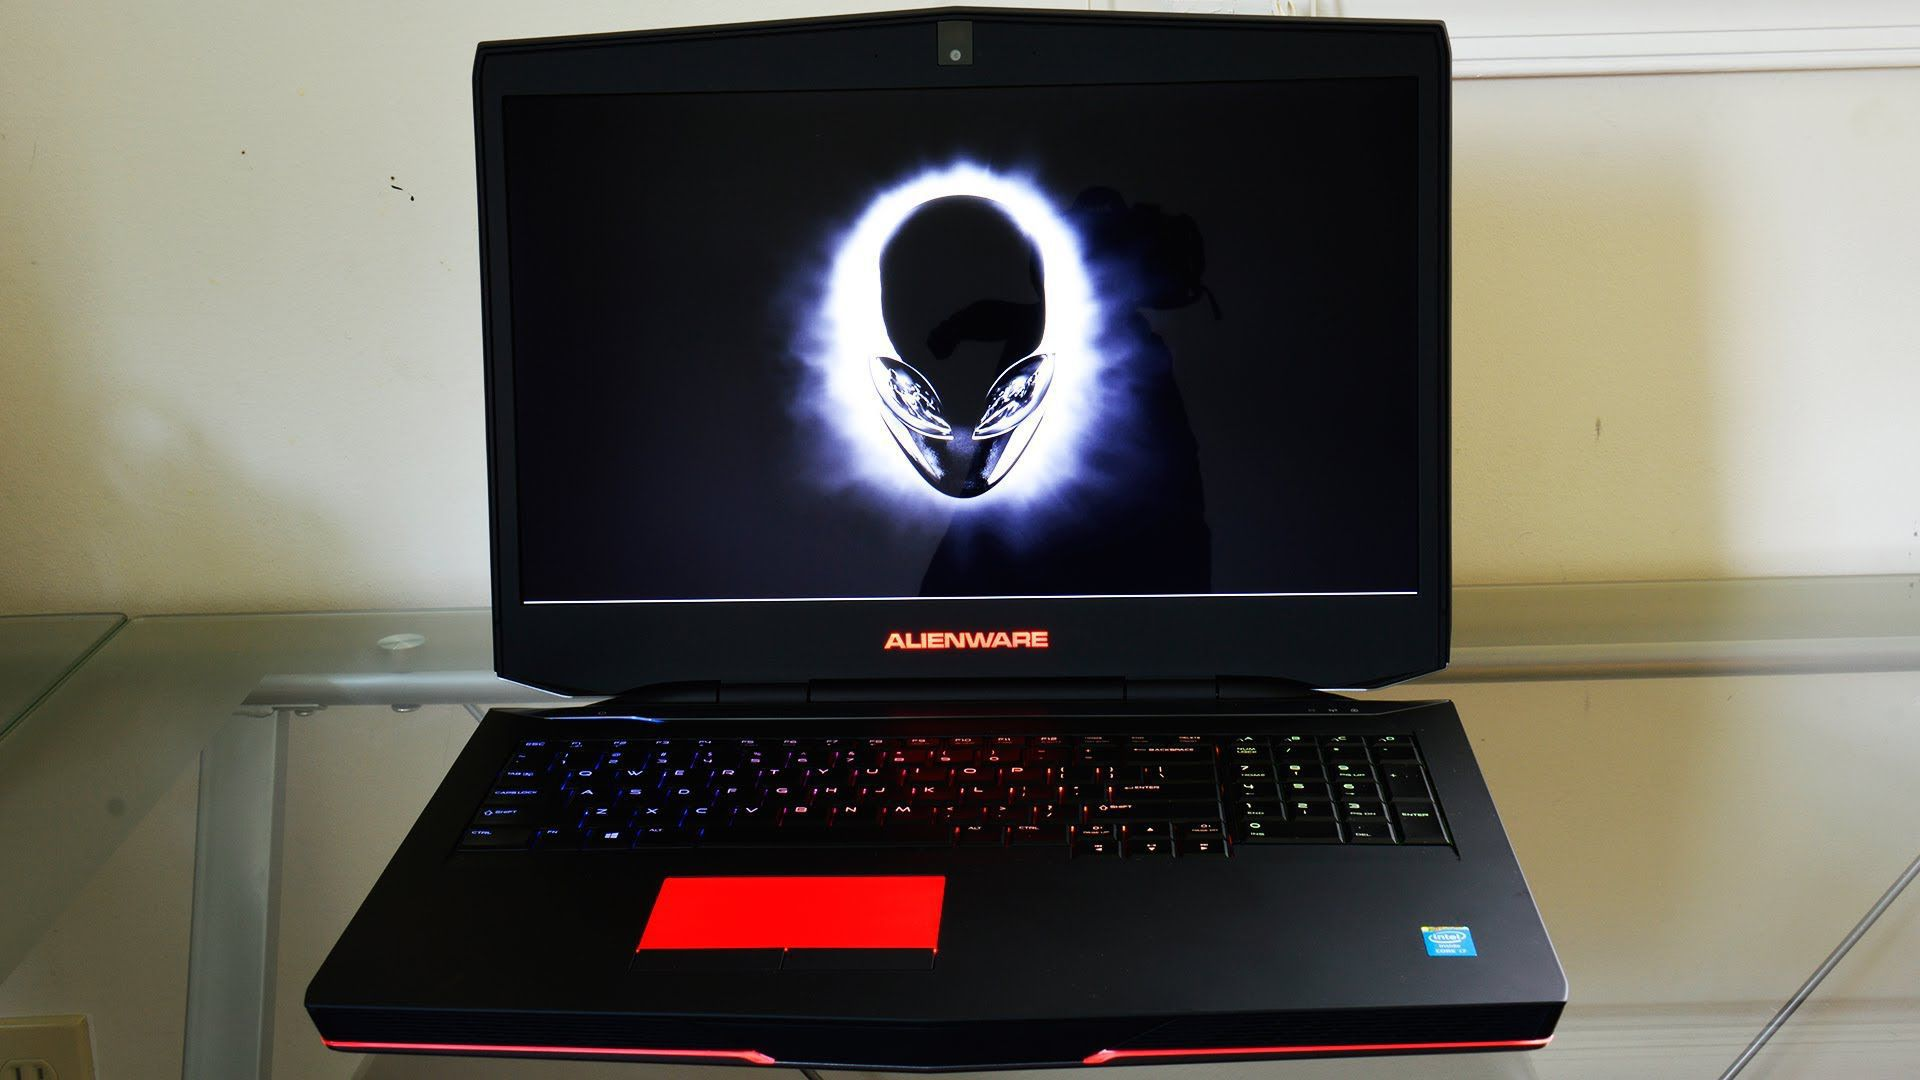 Alienware M17x In High Resolution